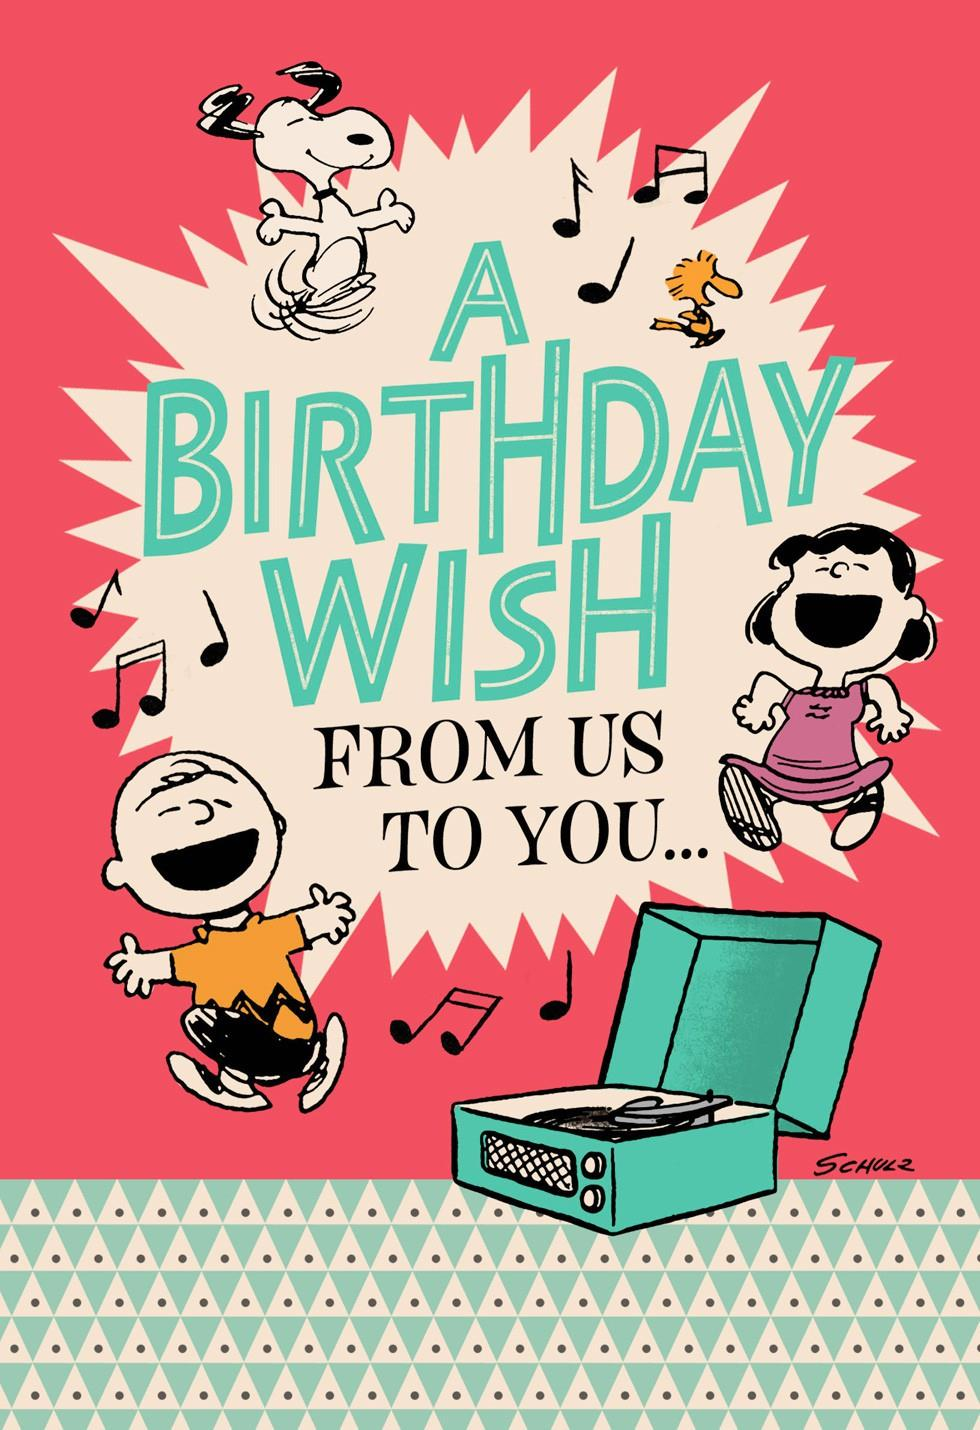 peanuts® happiness the whole year through birthday card